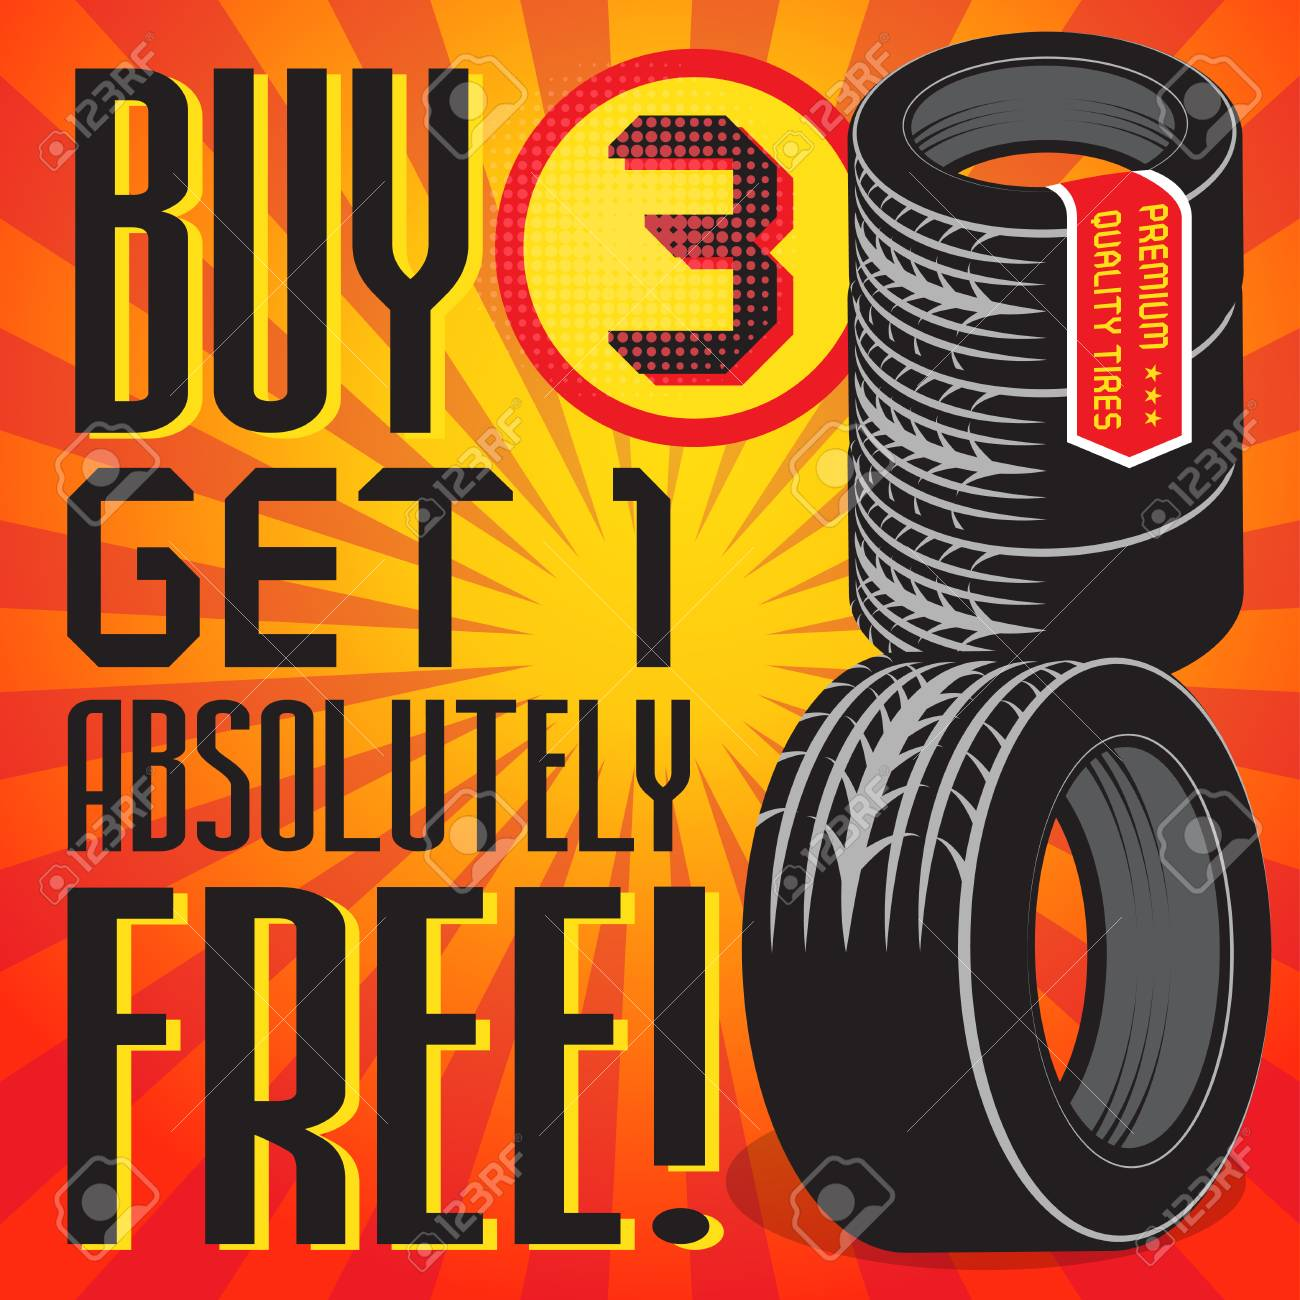 Vintage Tire Service Or Garage Poster With Text Buy 3 Get 1 Free